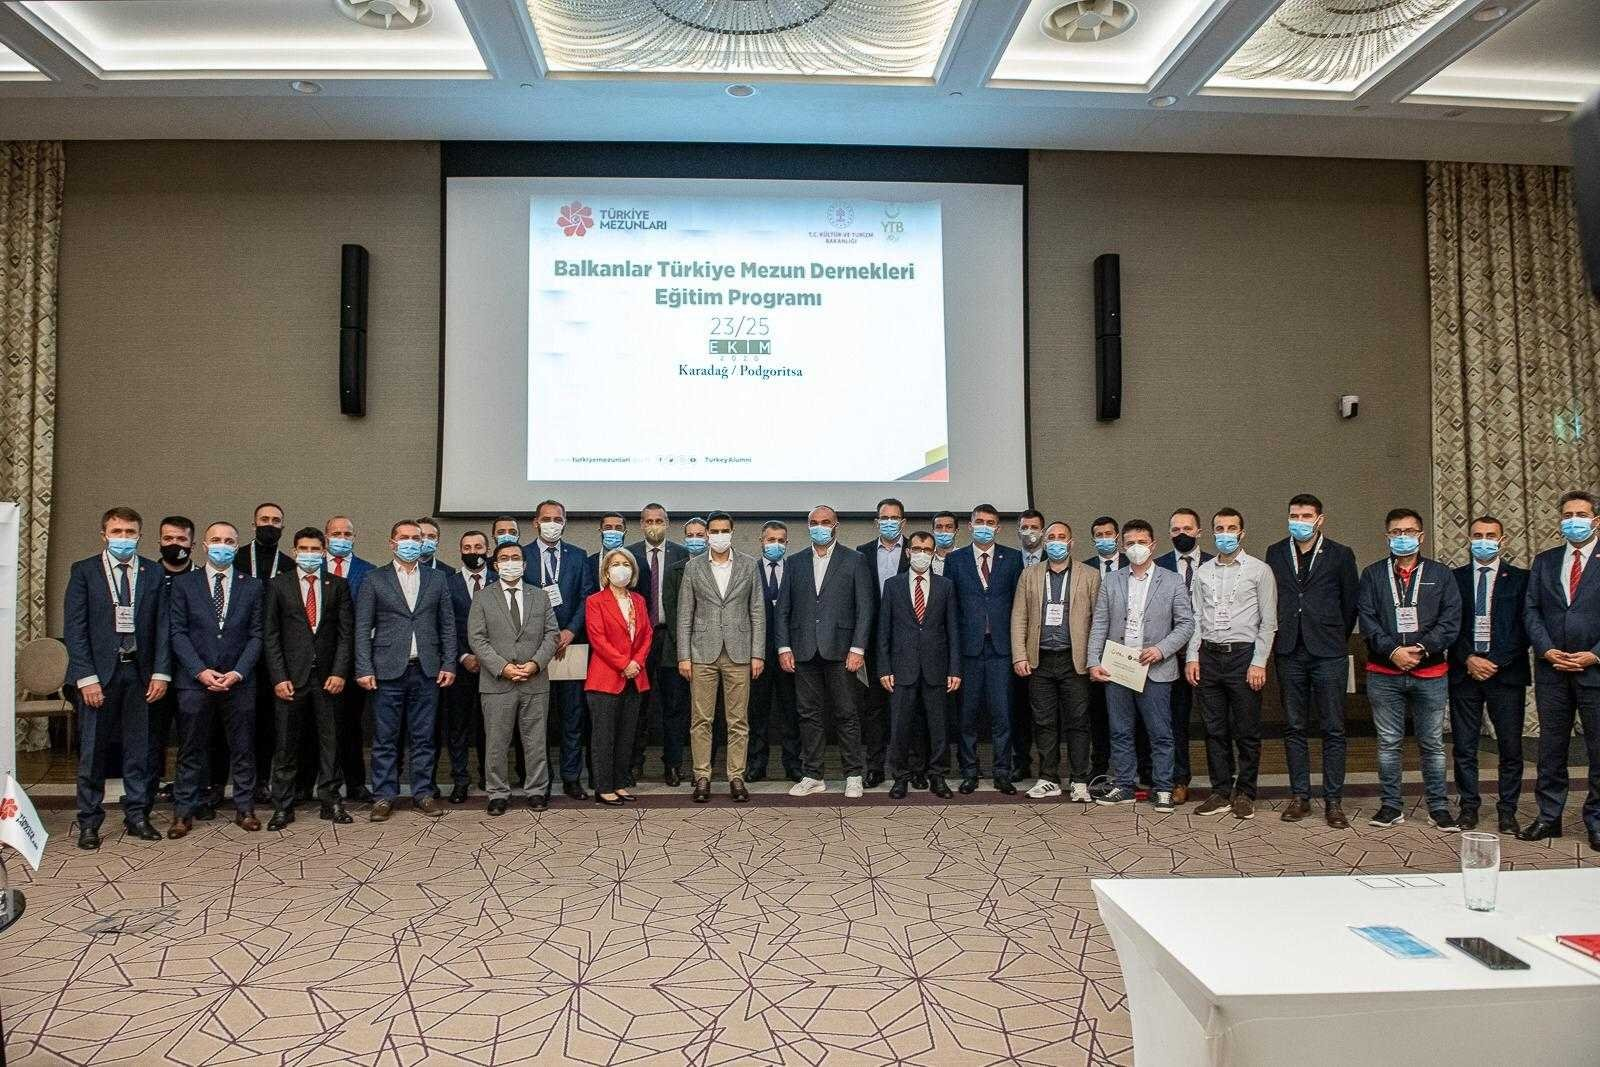 YTB President Abdullah Eren (C) poses with participants, in Podgorica, Montenegro, Oct. 26, 2020. (COURTESY OF YTB)